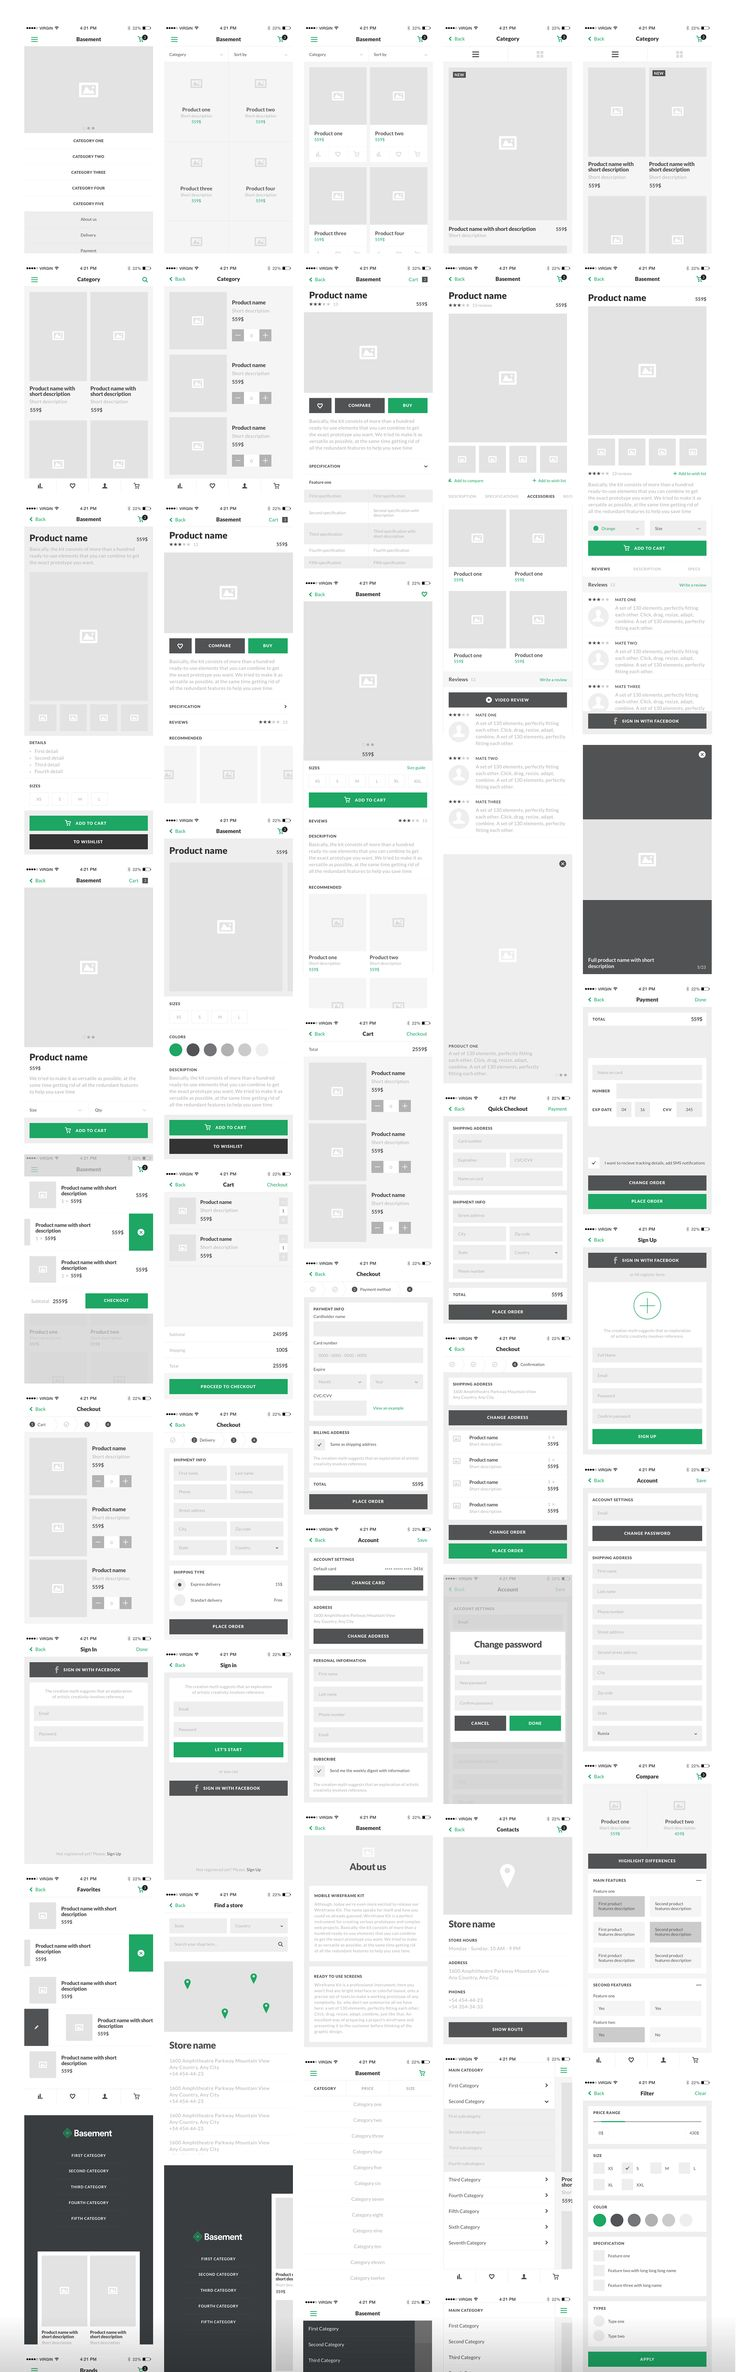 Basement iOS: Wireframe UI Kit